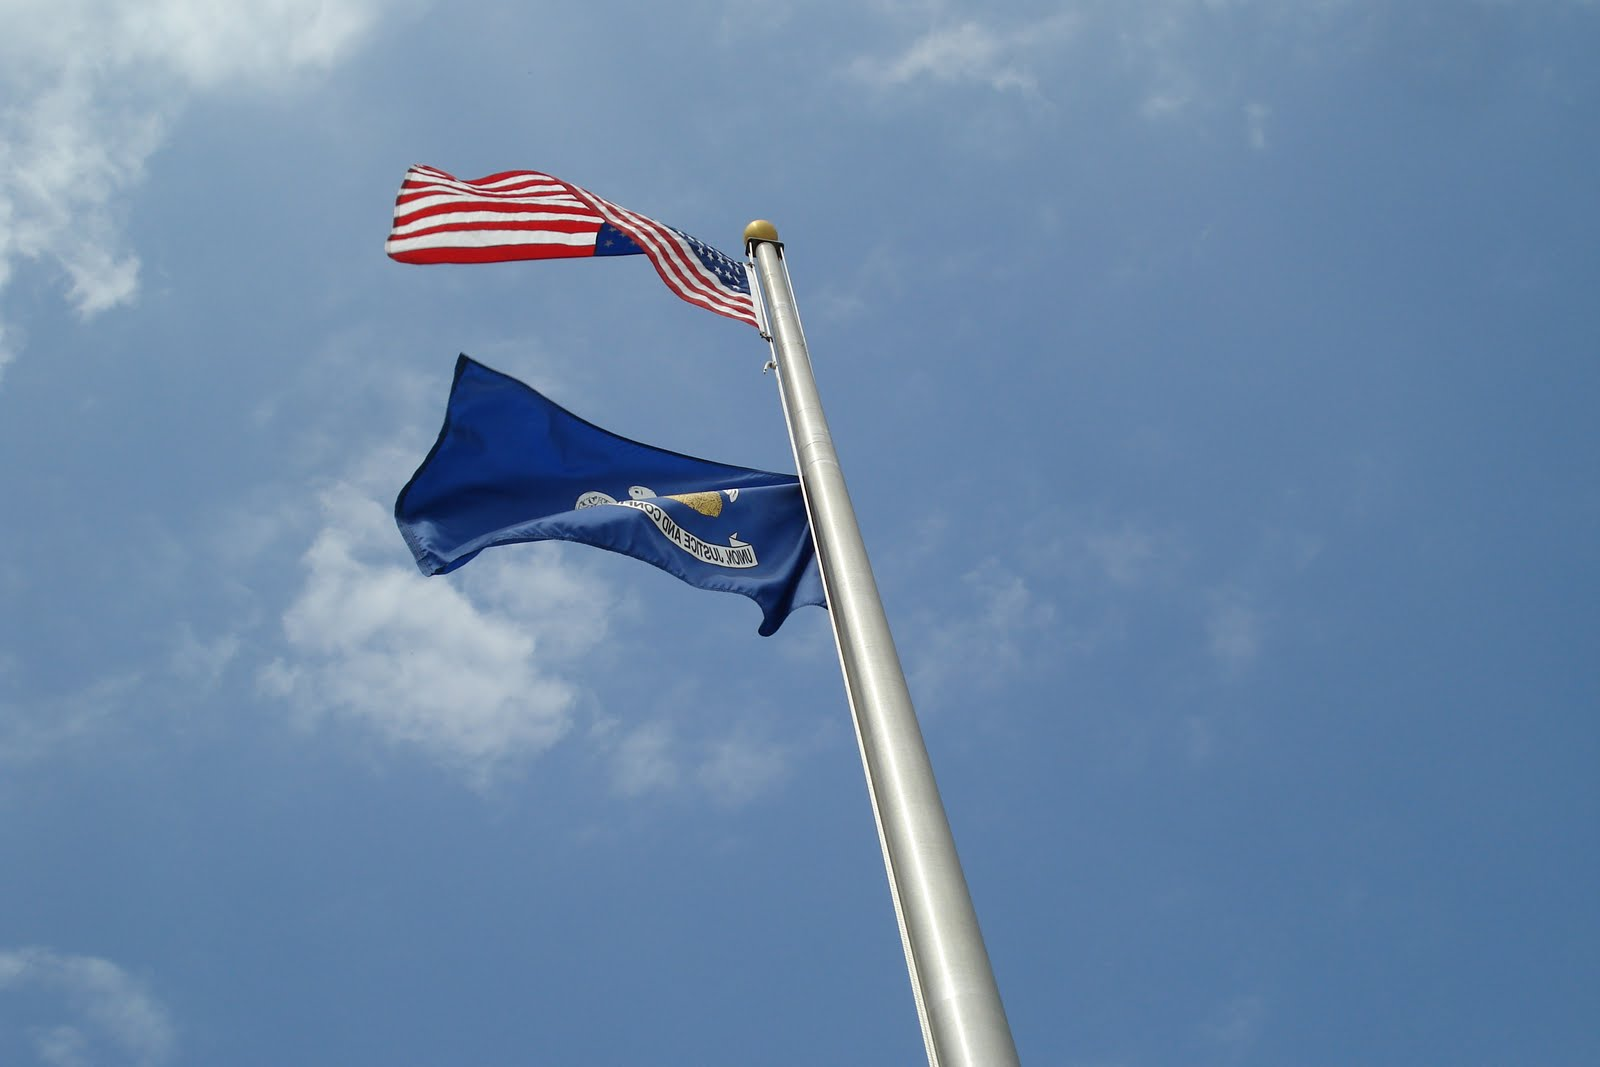 US and Louisiana flags both should fly